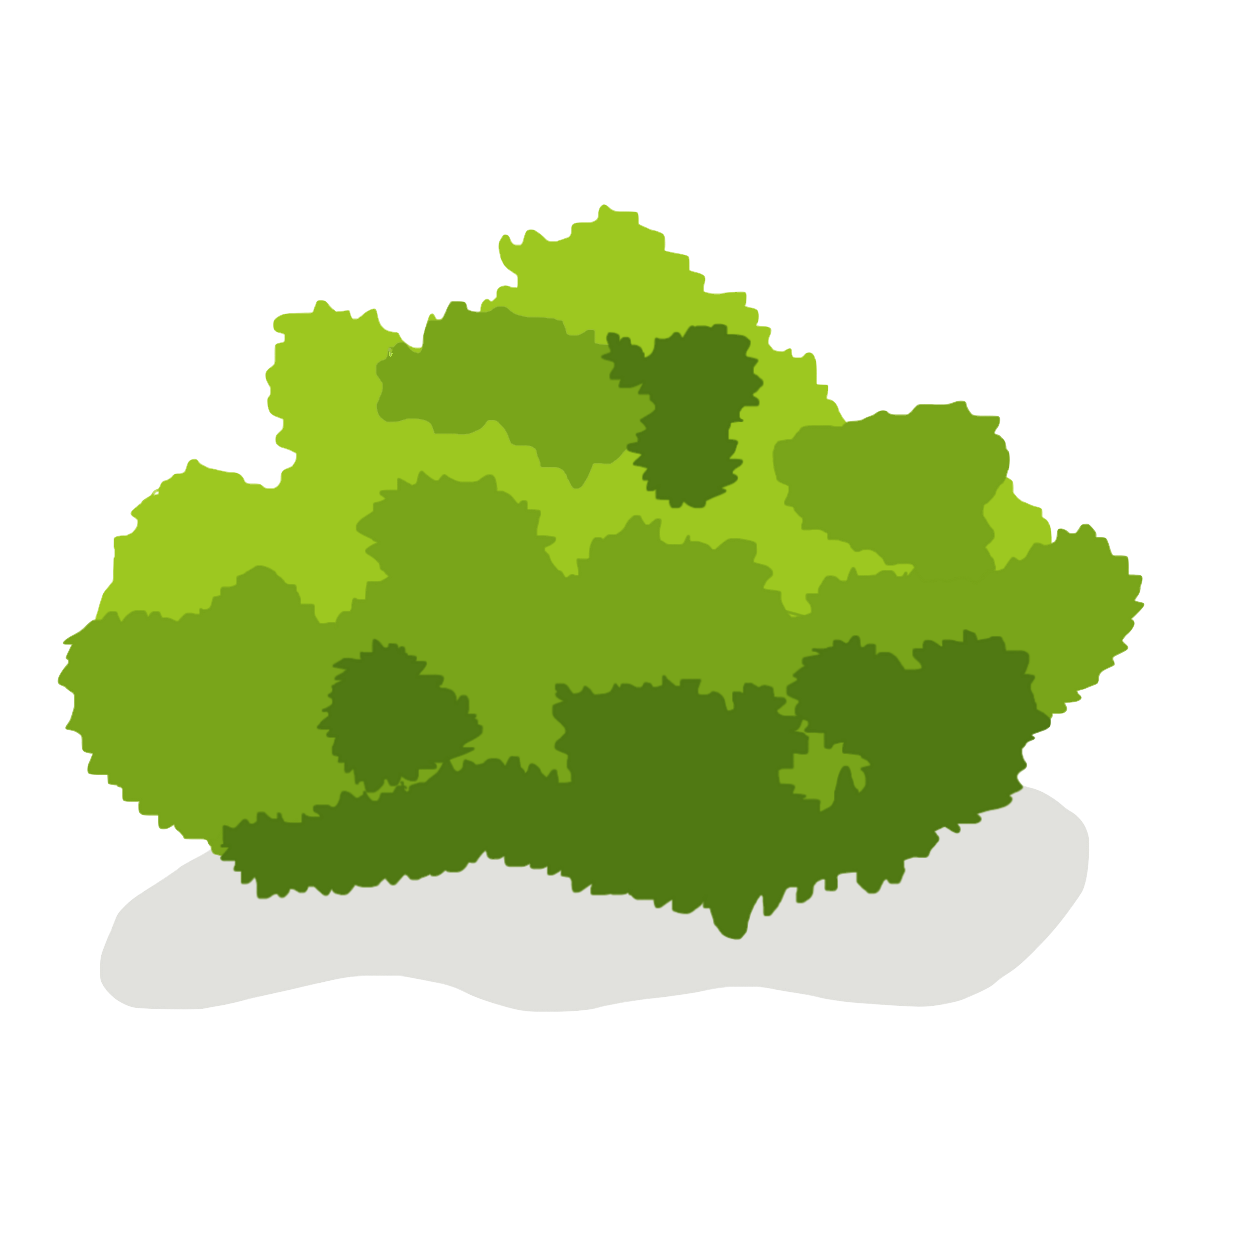 Bush Free Images At Vector Clip Art Online Royalty Free